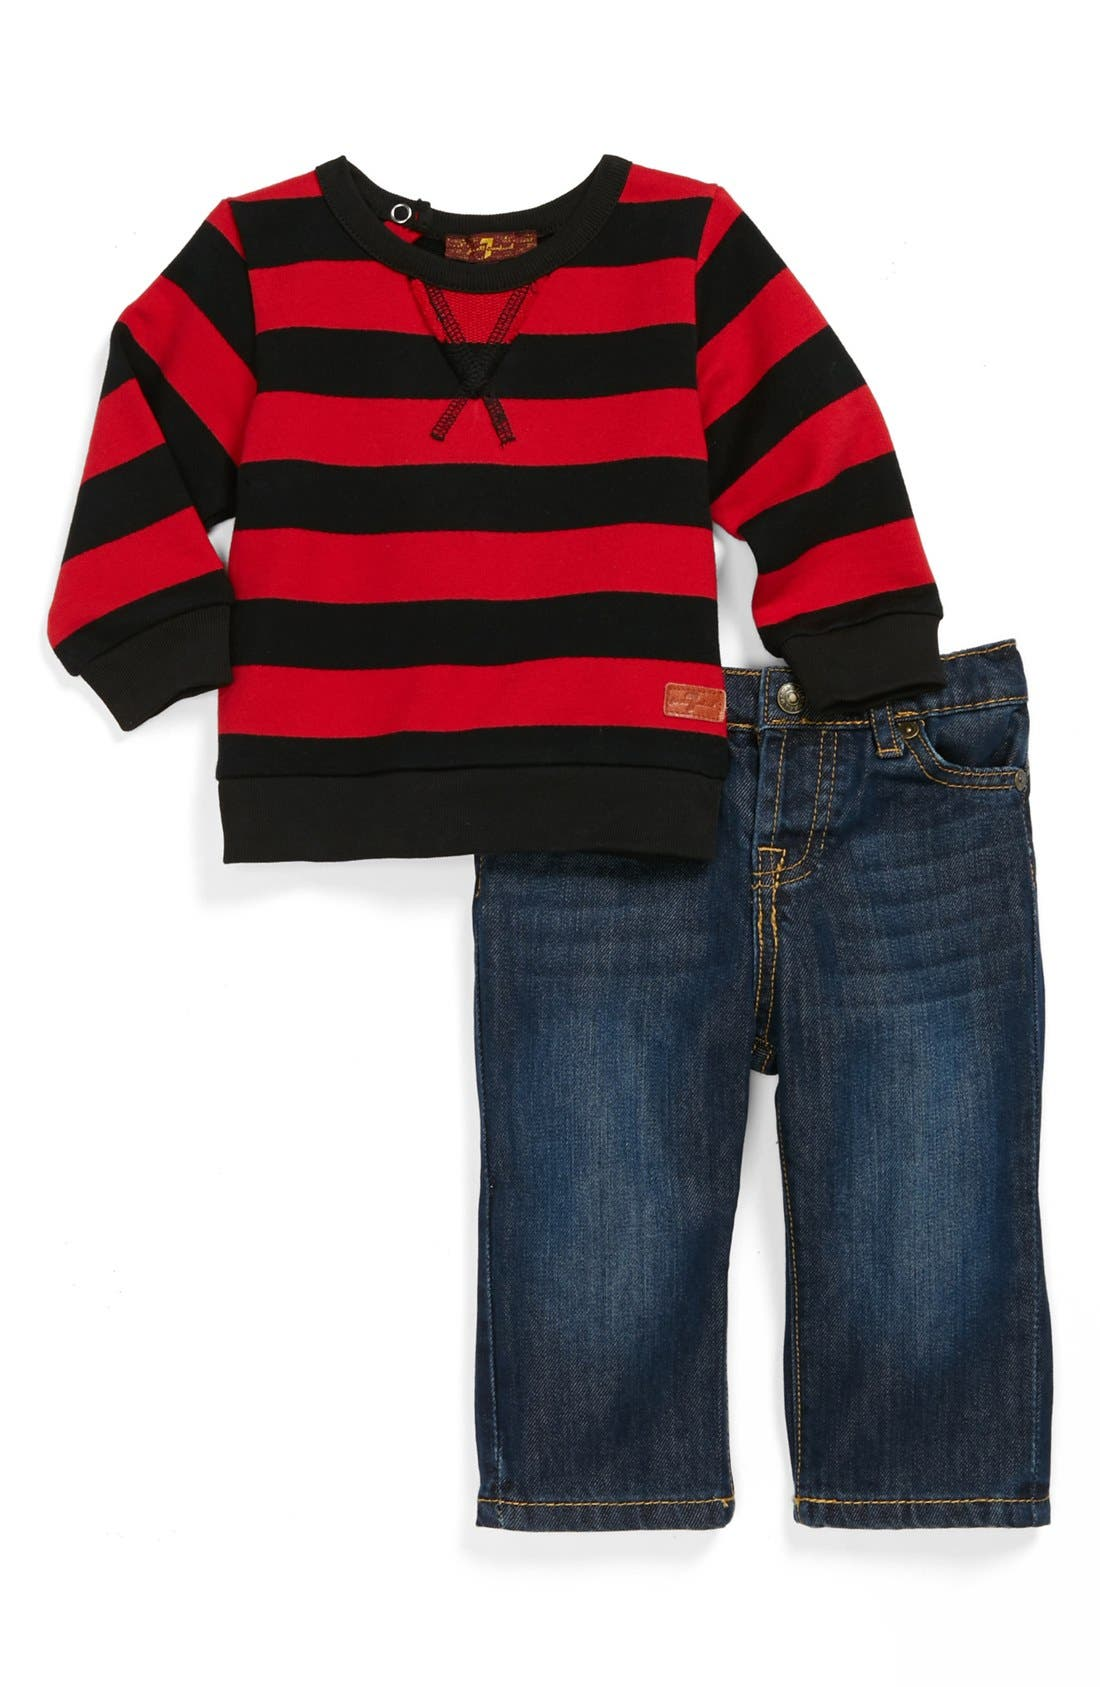 Main Image - 7 For All Mankind® Dark Wash Jeans & Stripe Top (Baby Boys)